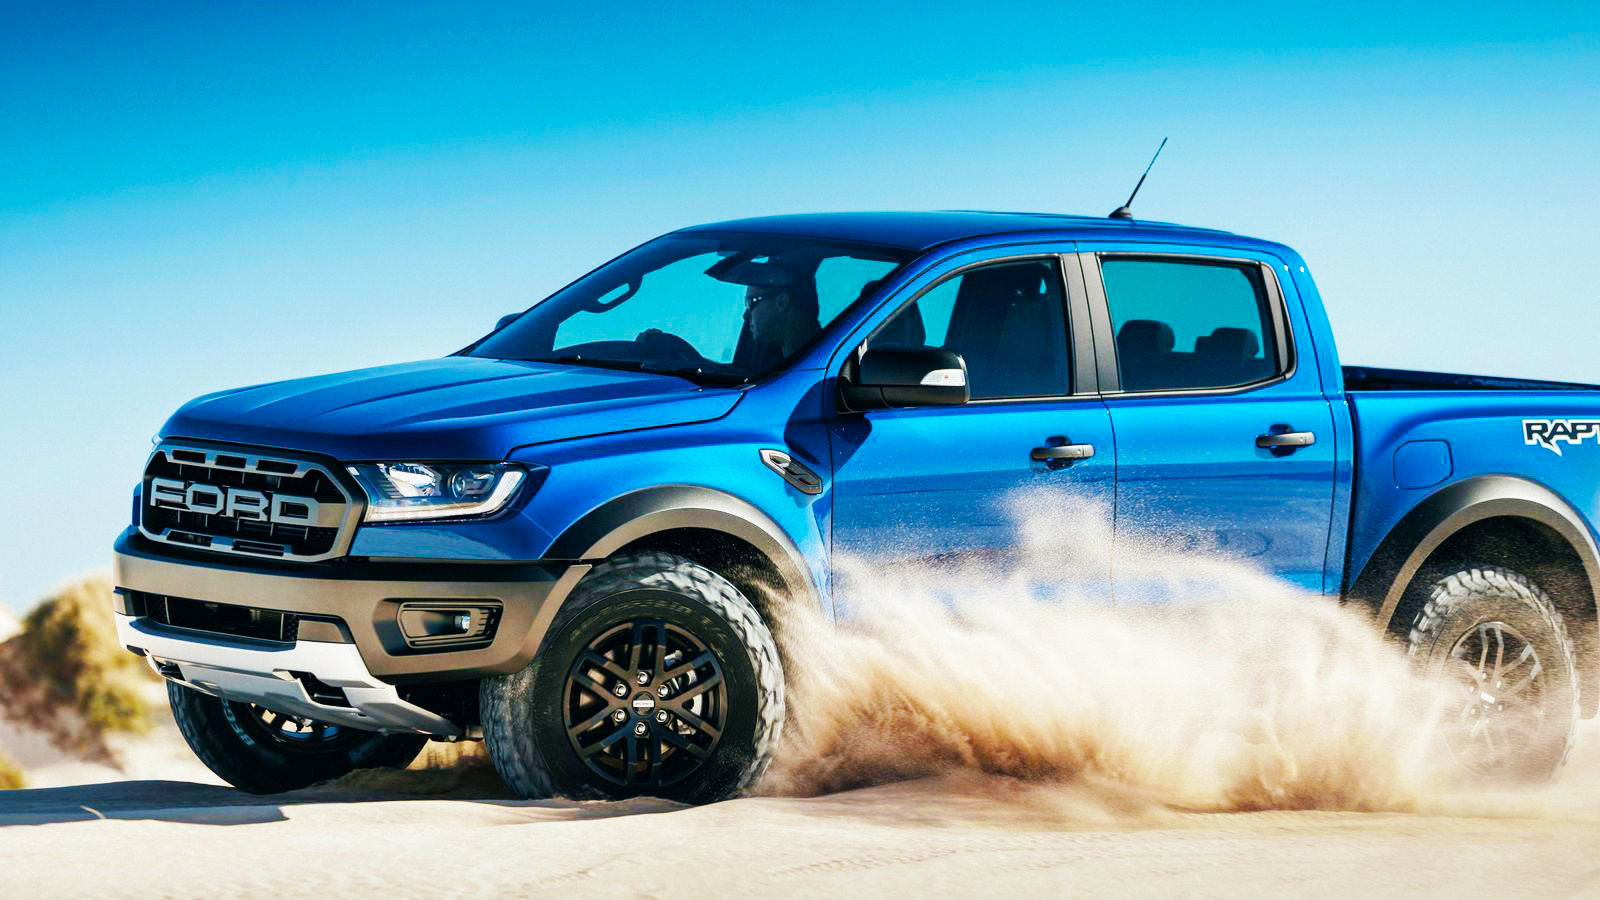 Worst Kept SecretThe New Ranger Raptor Should be Headed to the U.S., but With What Engine?